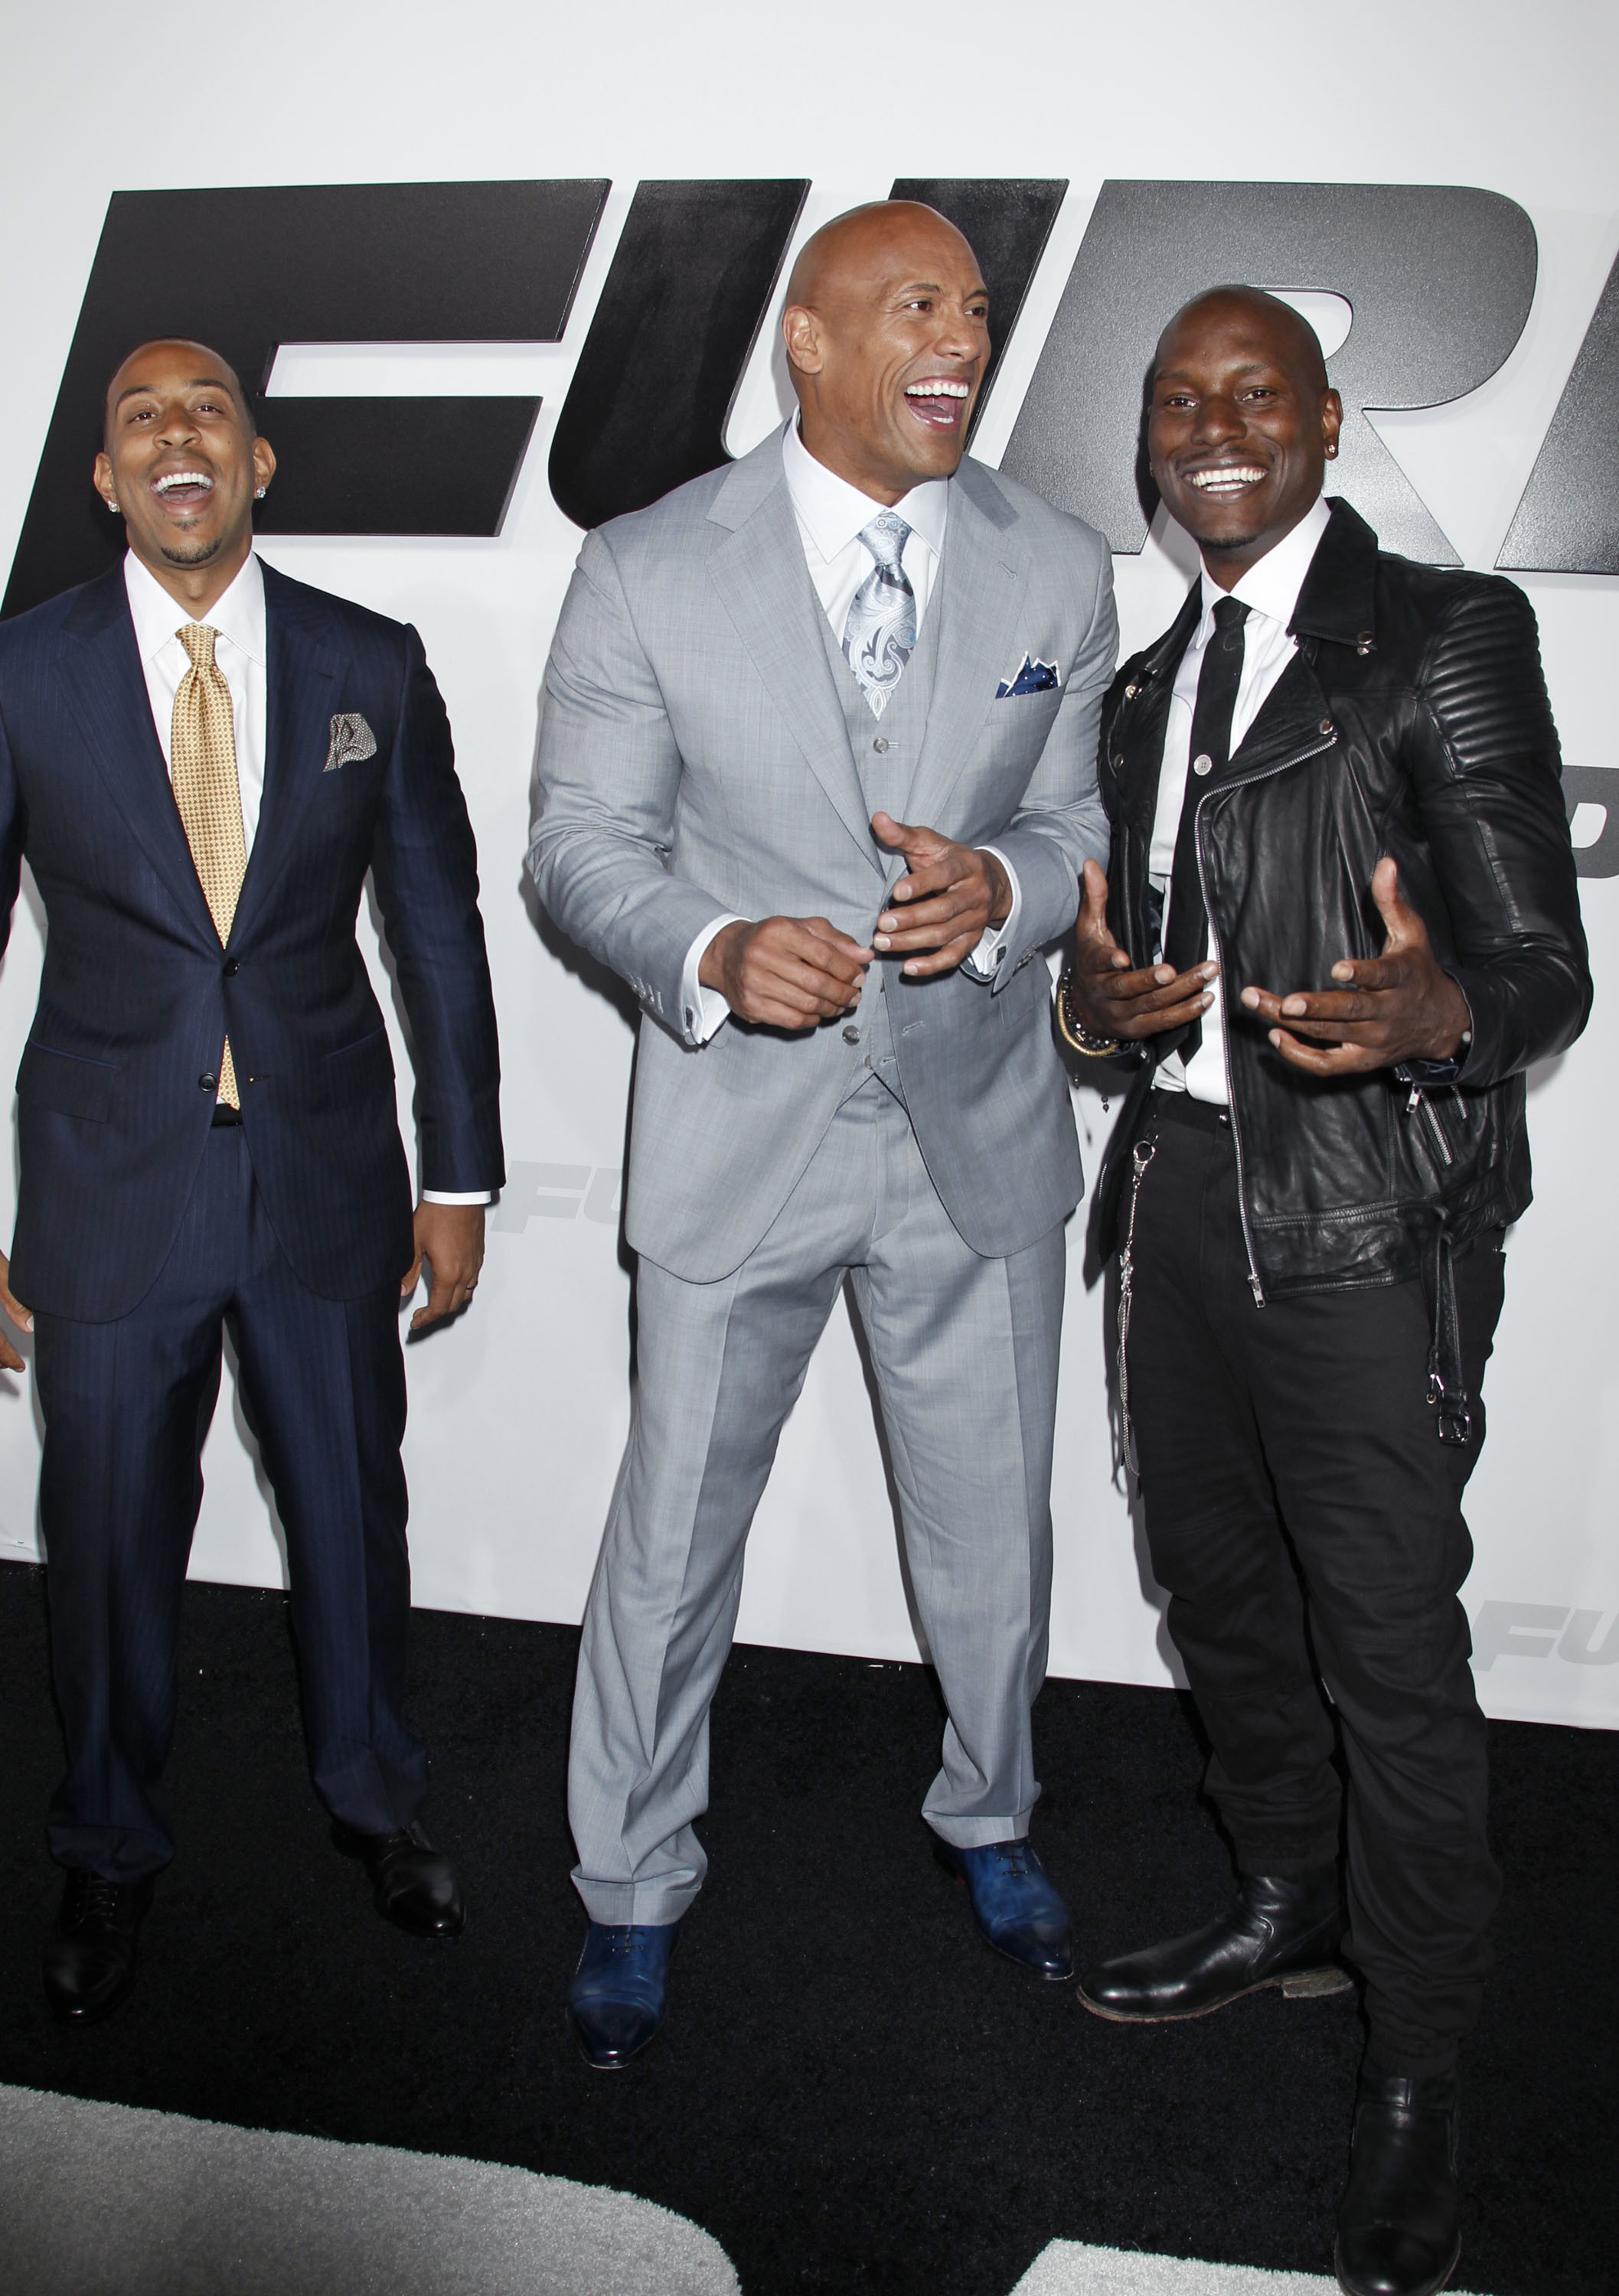 """Ludacris, Dwayne Johnson and Tyrese Gibson attend the premiere for """"Fast and Furious 7"""" in Hollywood on April 1, 2017."""